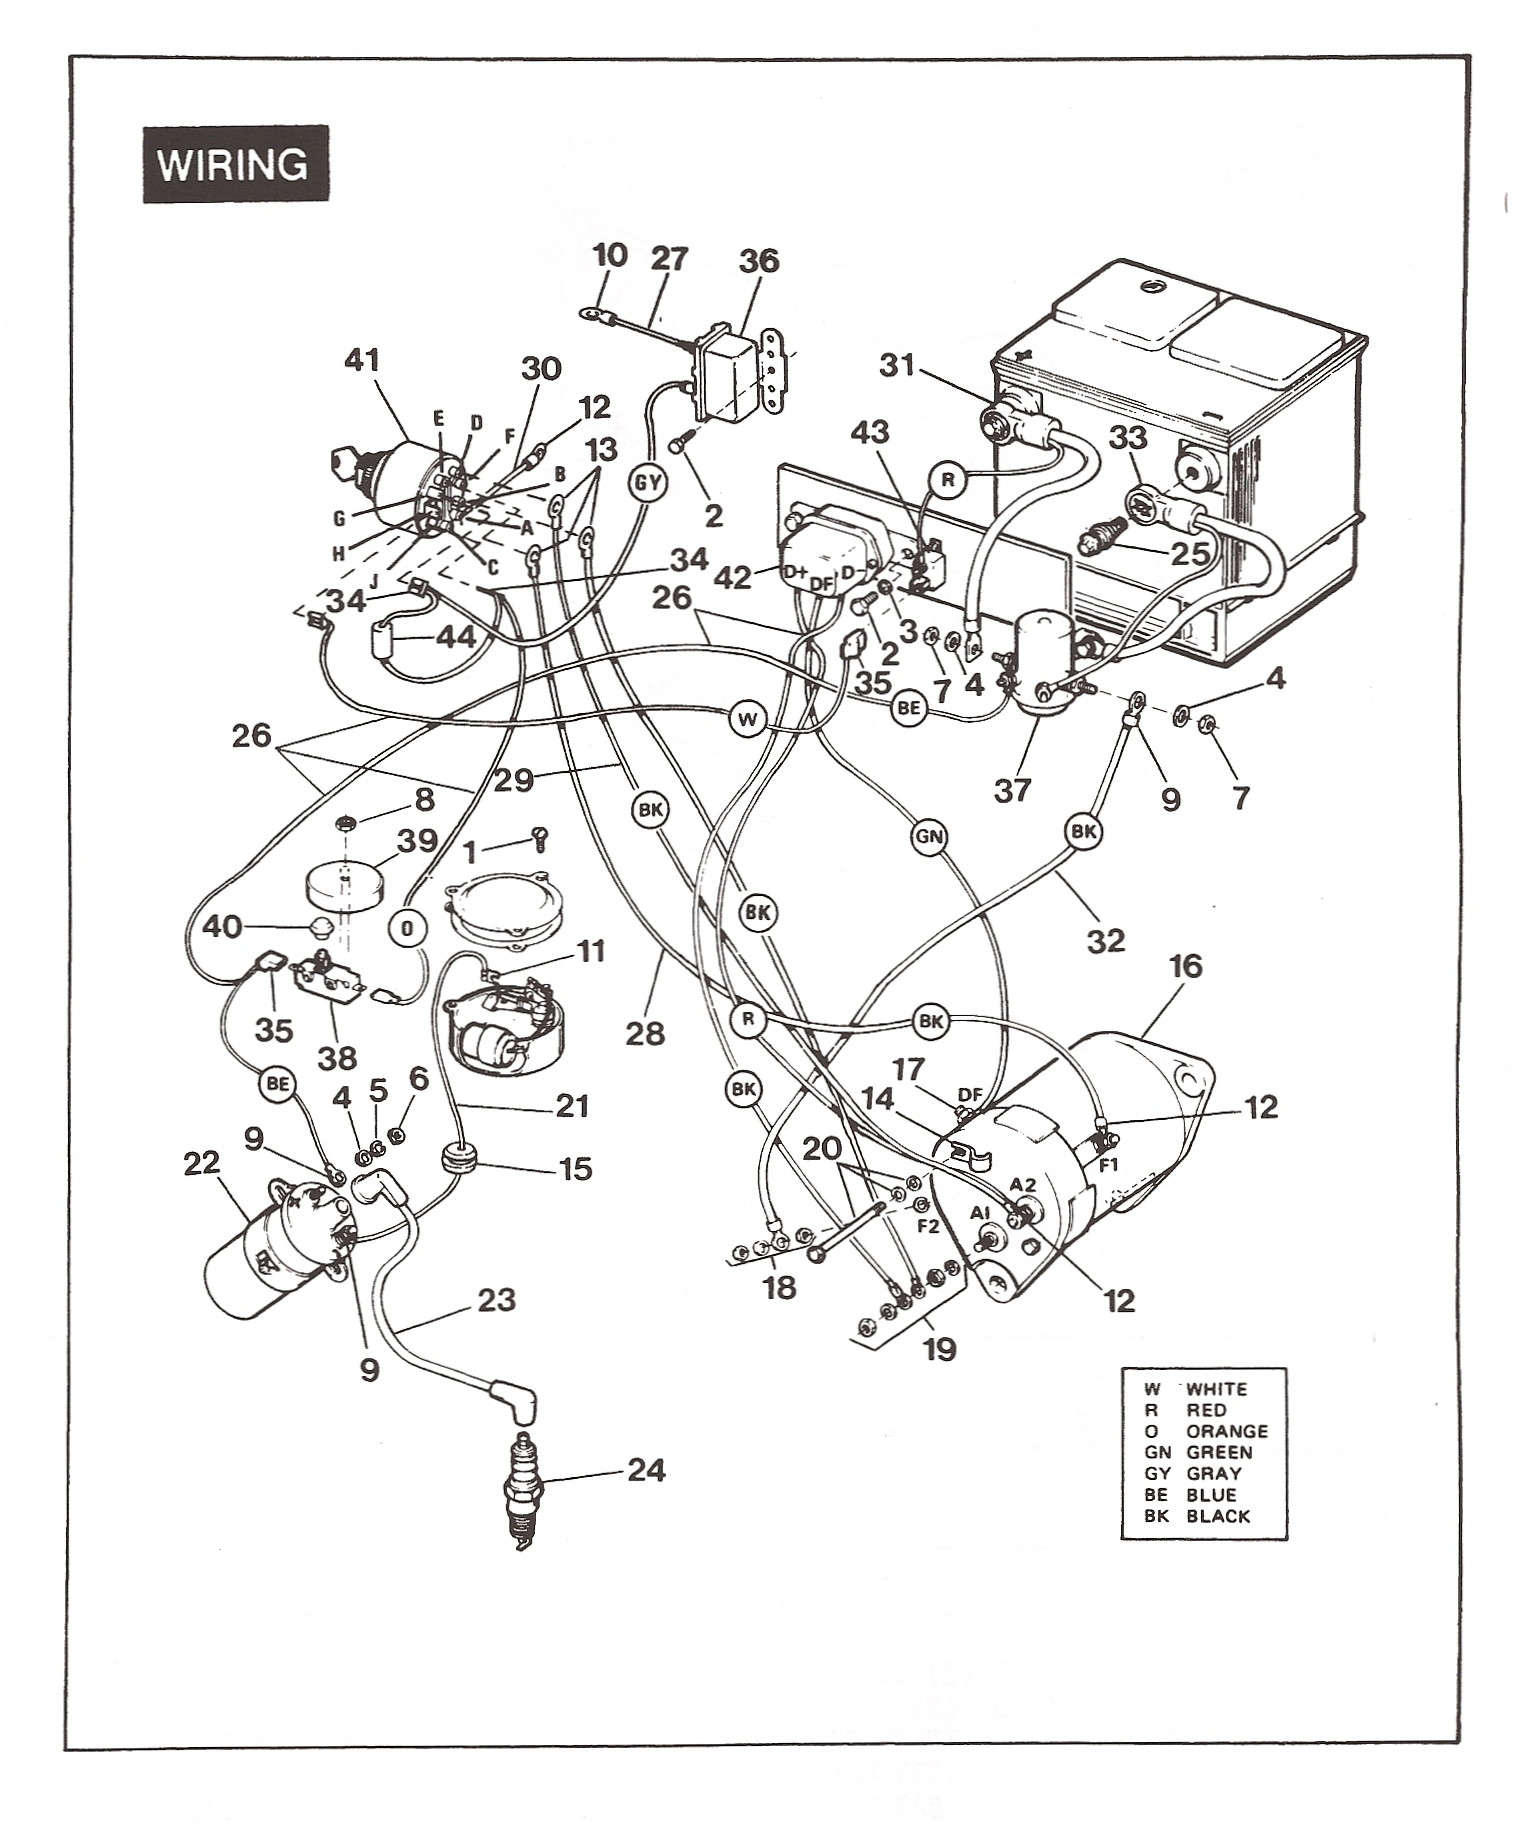 Parcar Wiring Diagram